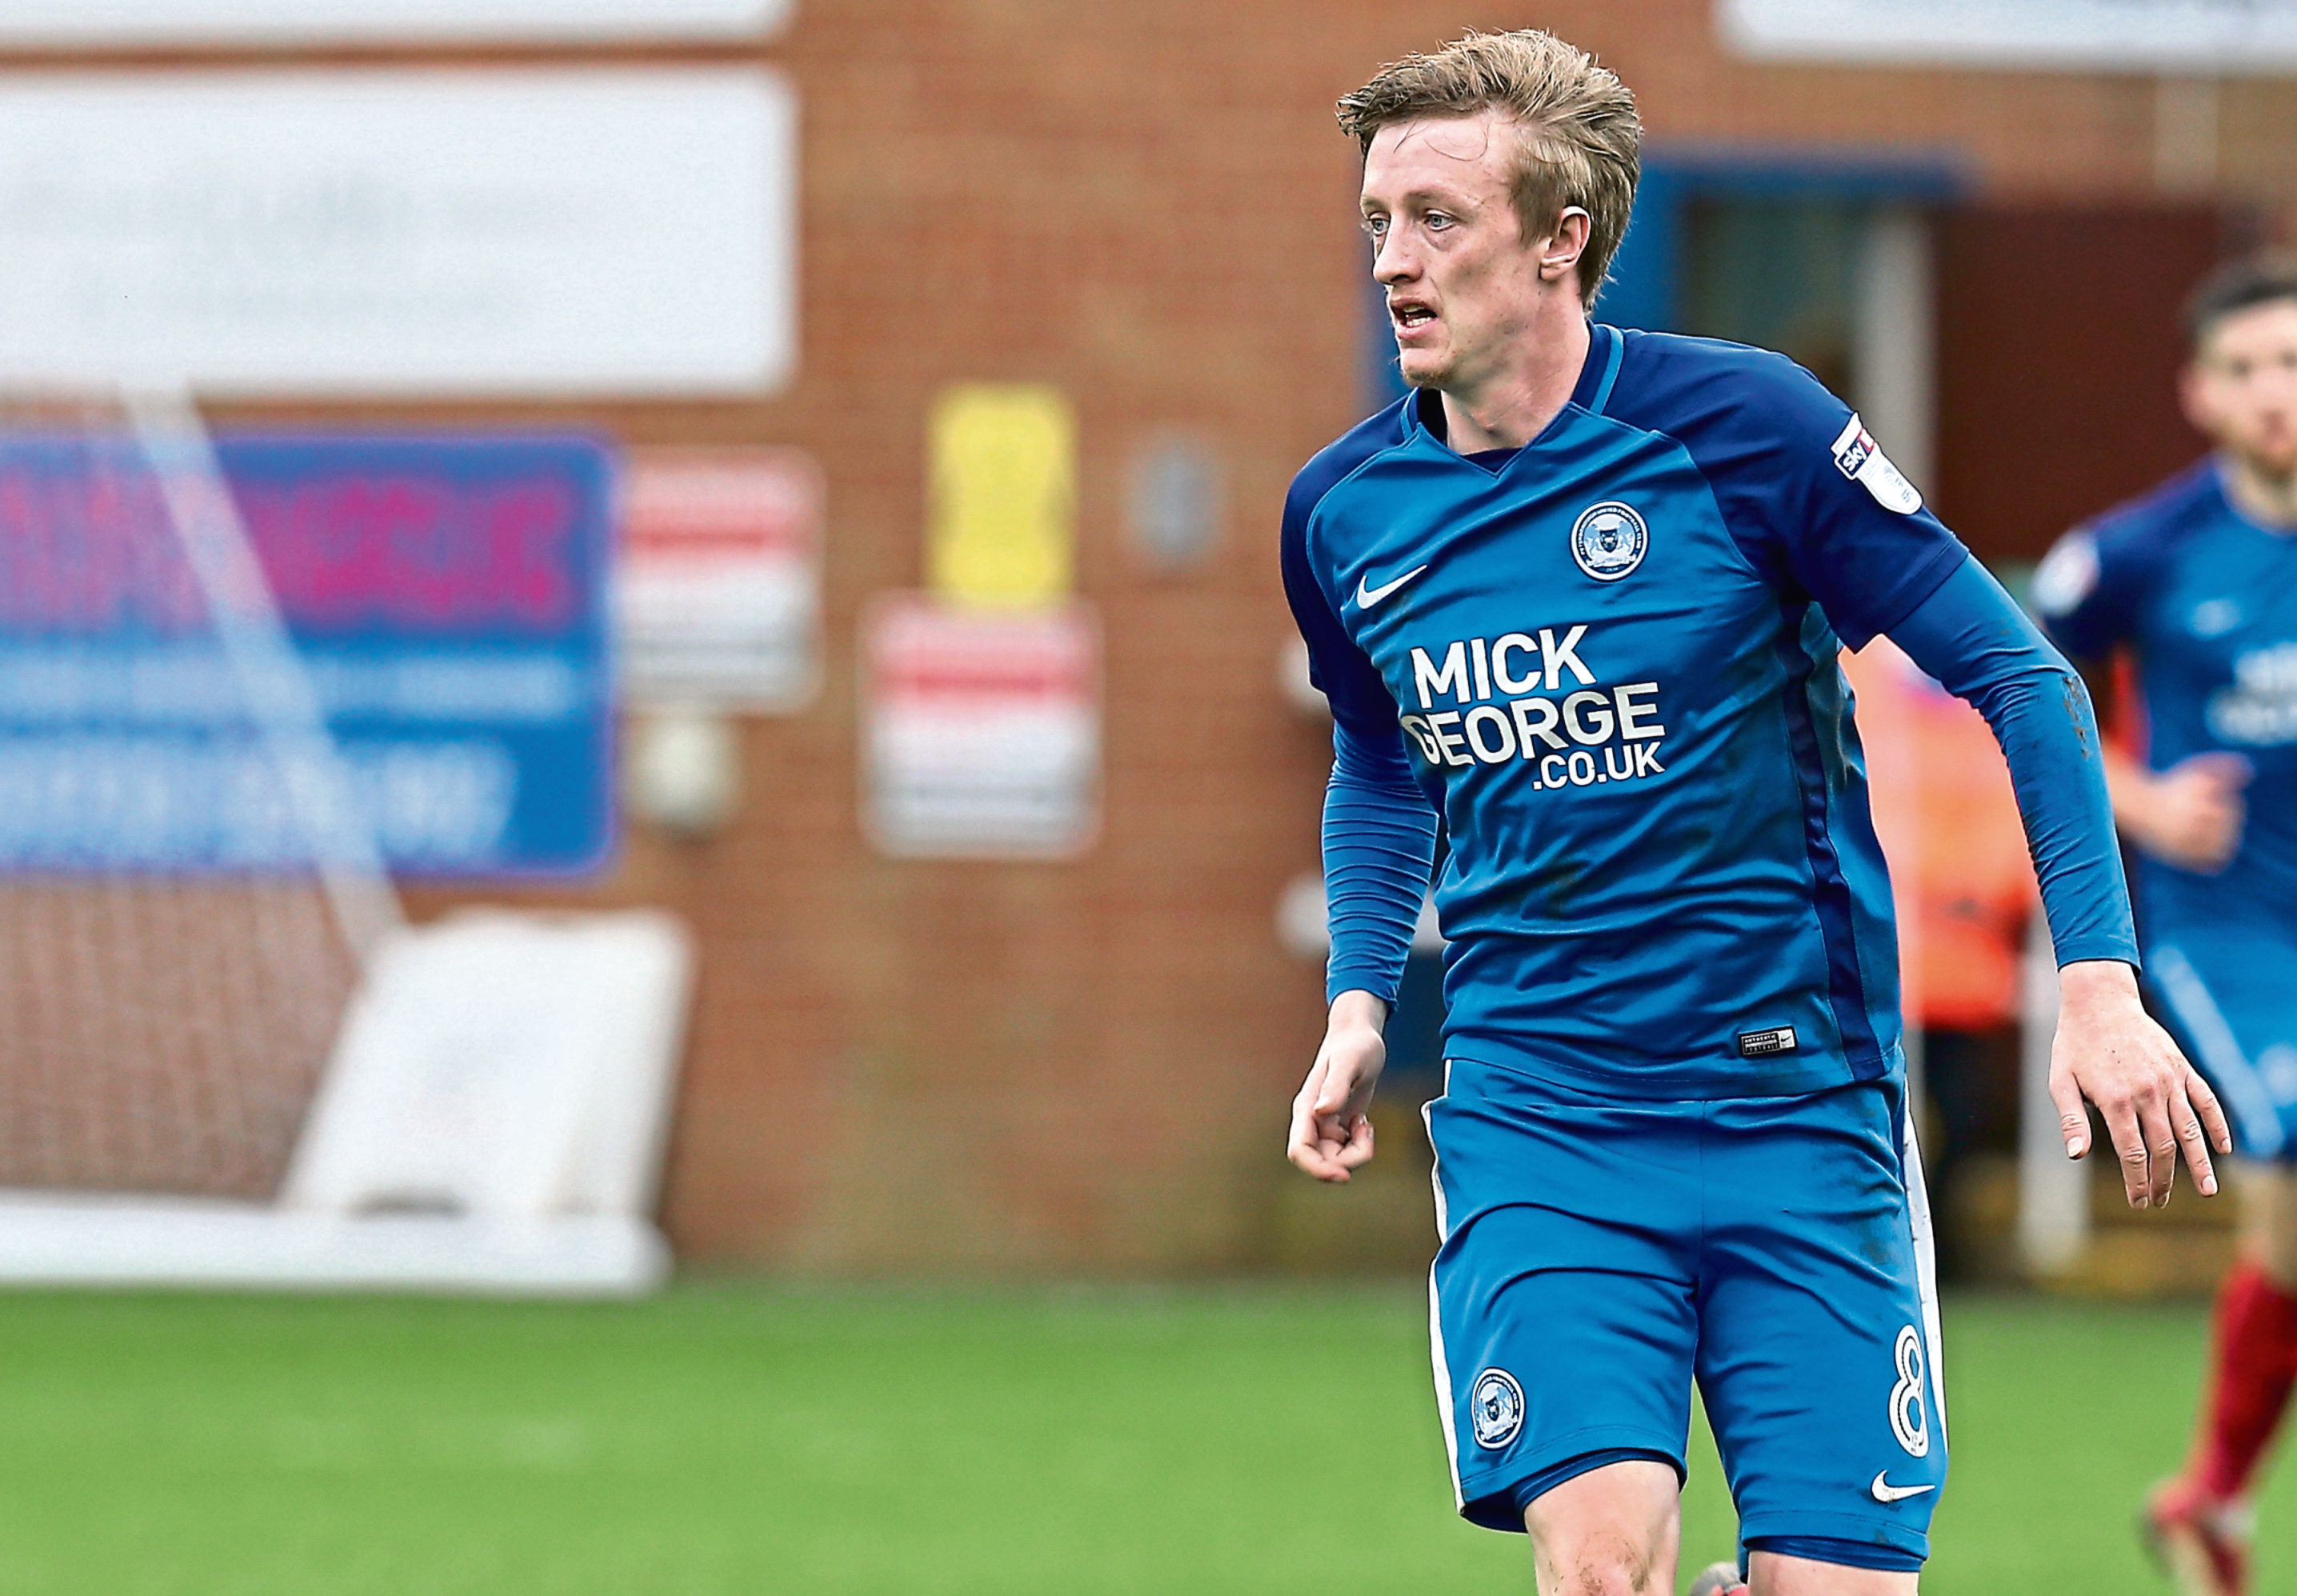 Chris Forrester of Peterborough United in action during the Sky Bet League One match between Peterborough United and Northampton Town at ABAX Stadium on April 2, 2018 in Peterborough, England.